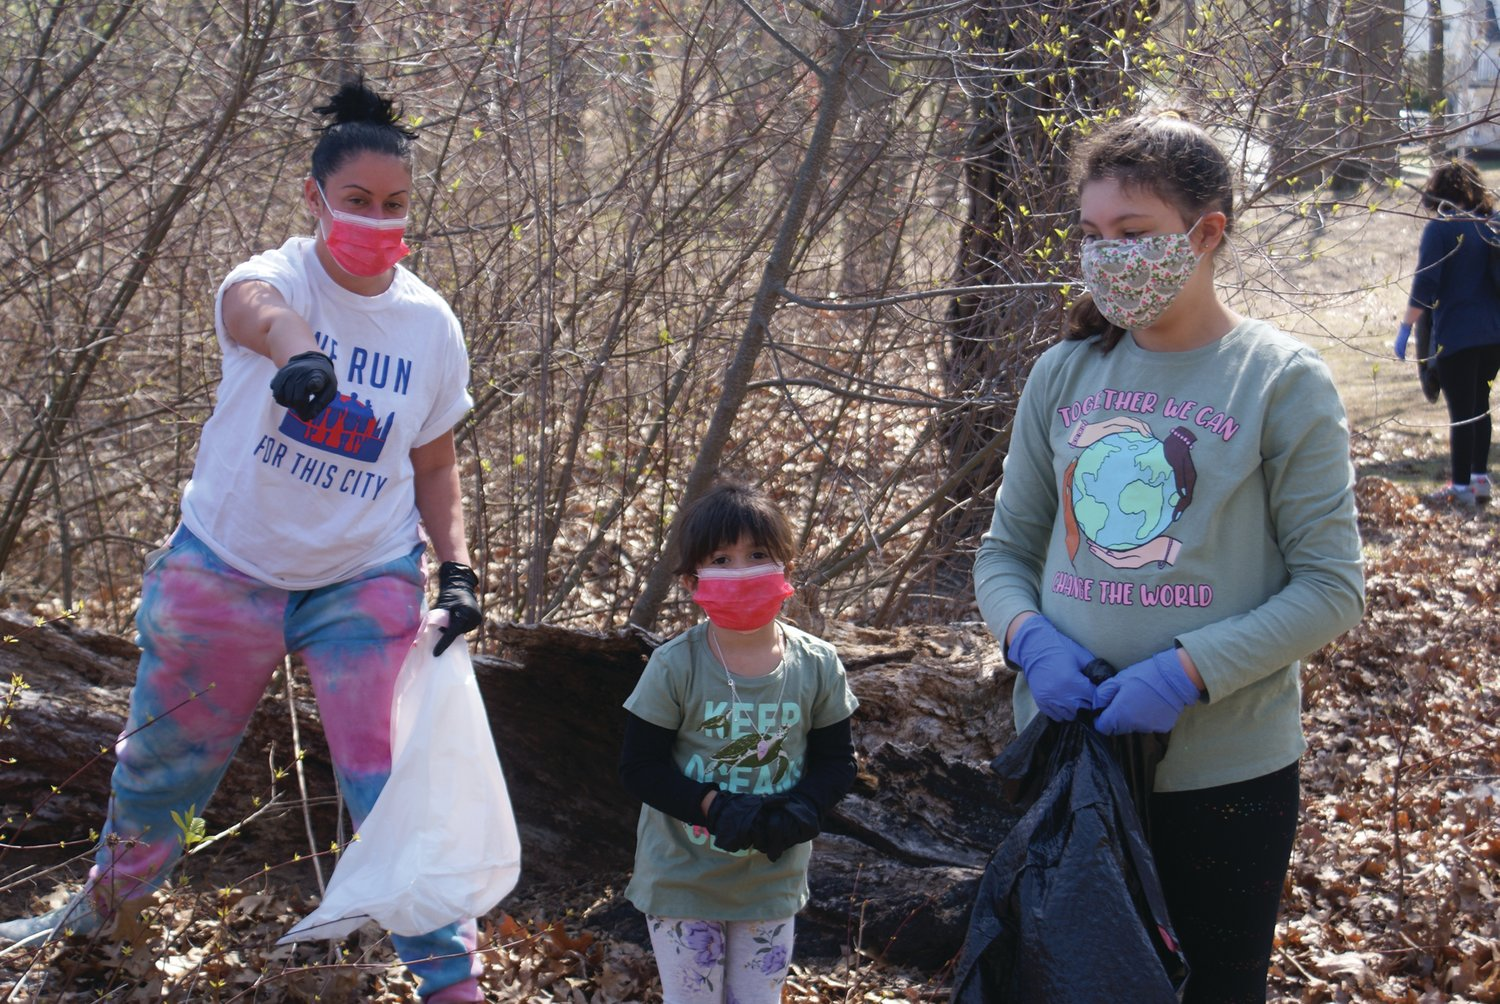 CLEANING UP: Citywide Councilwoman Nicole Renzulli points to trash found in Meschanticut Park as her daughter, 4-year-old Francesca Martins, and Sophia Paplauskas look on.